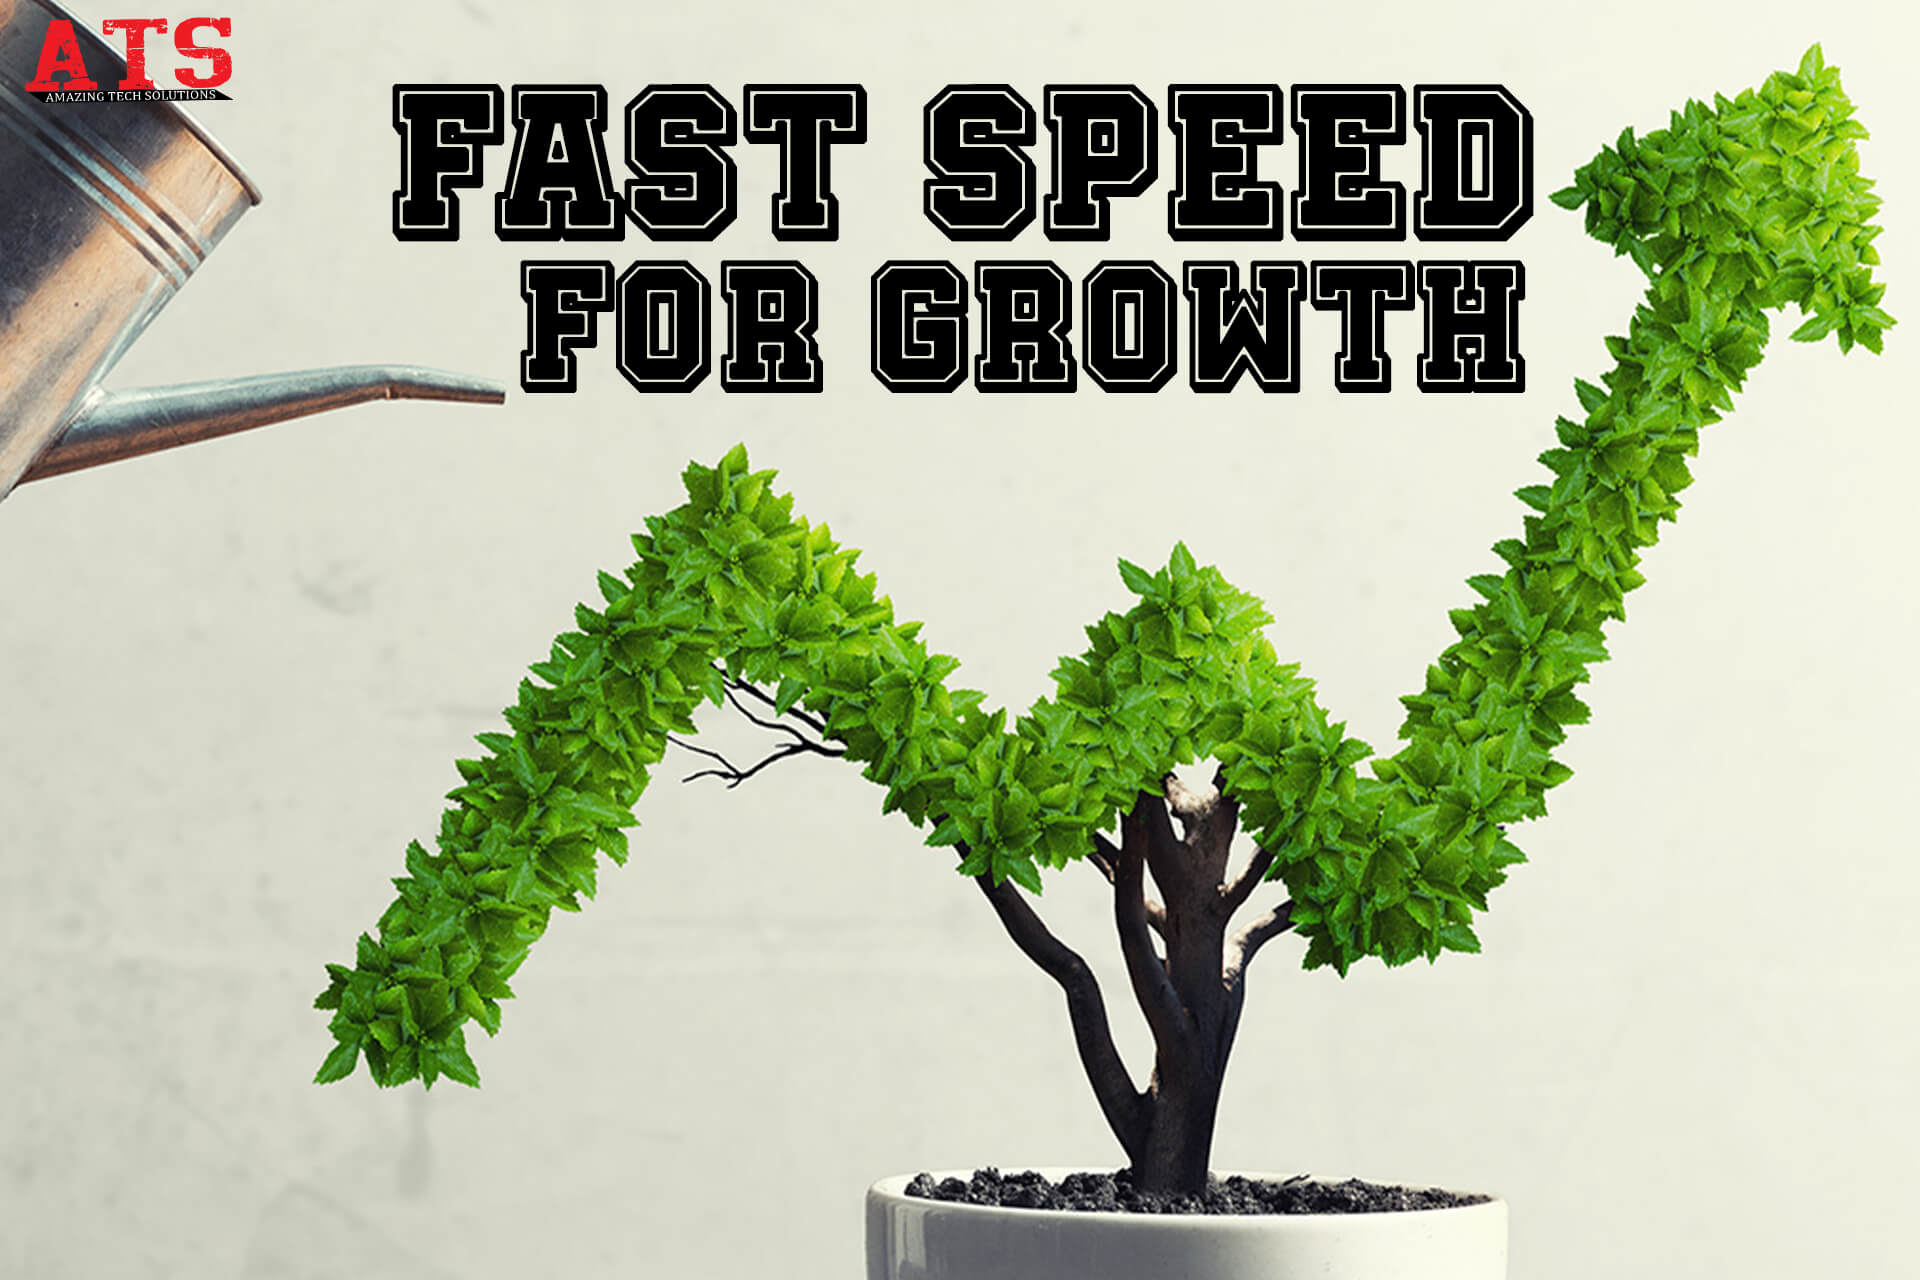 Fast speed for enhancing your businesses